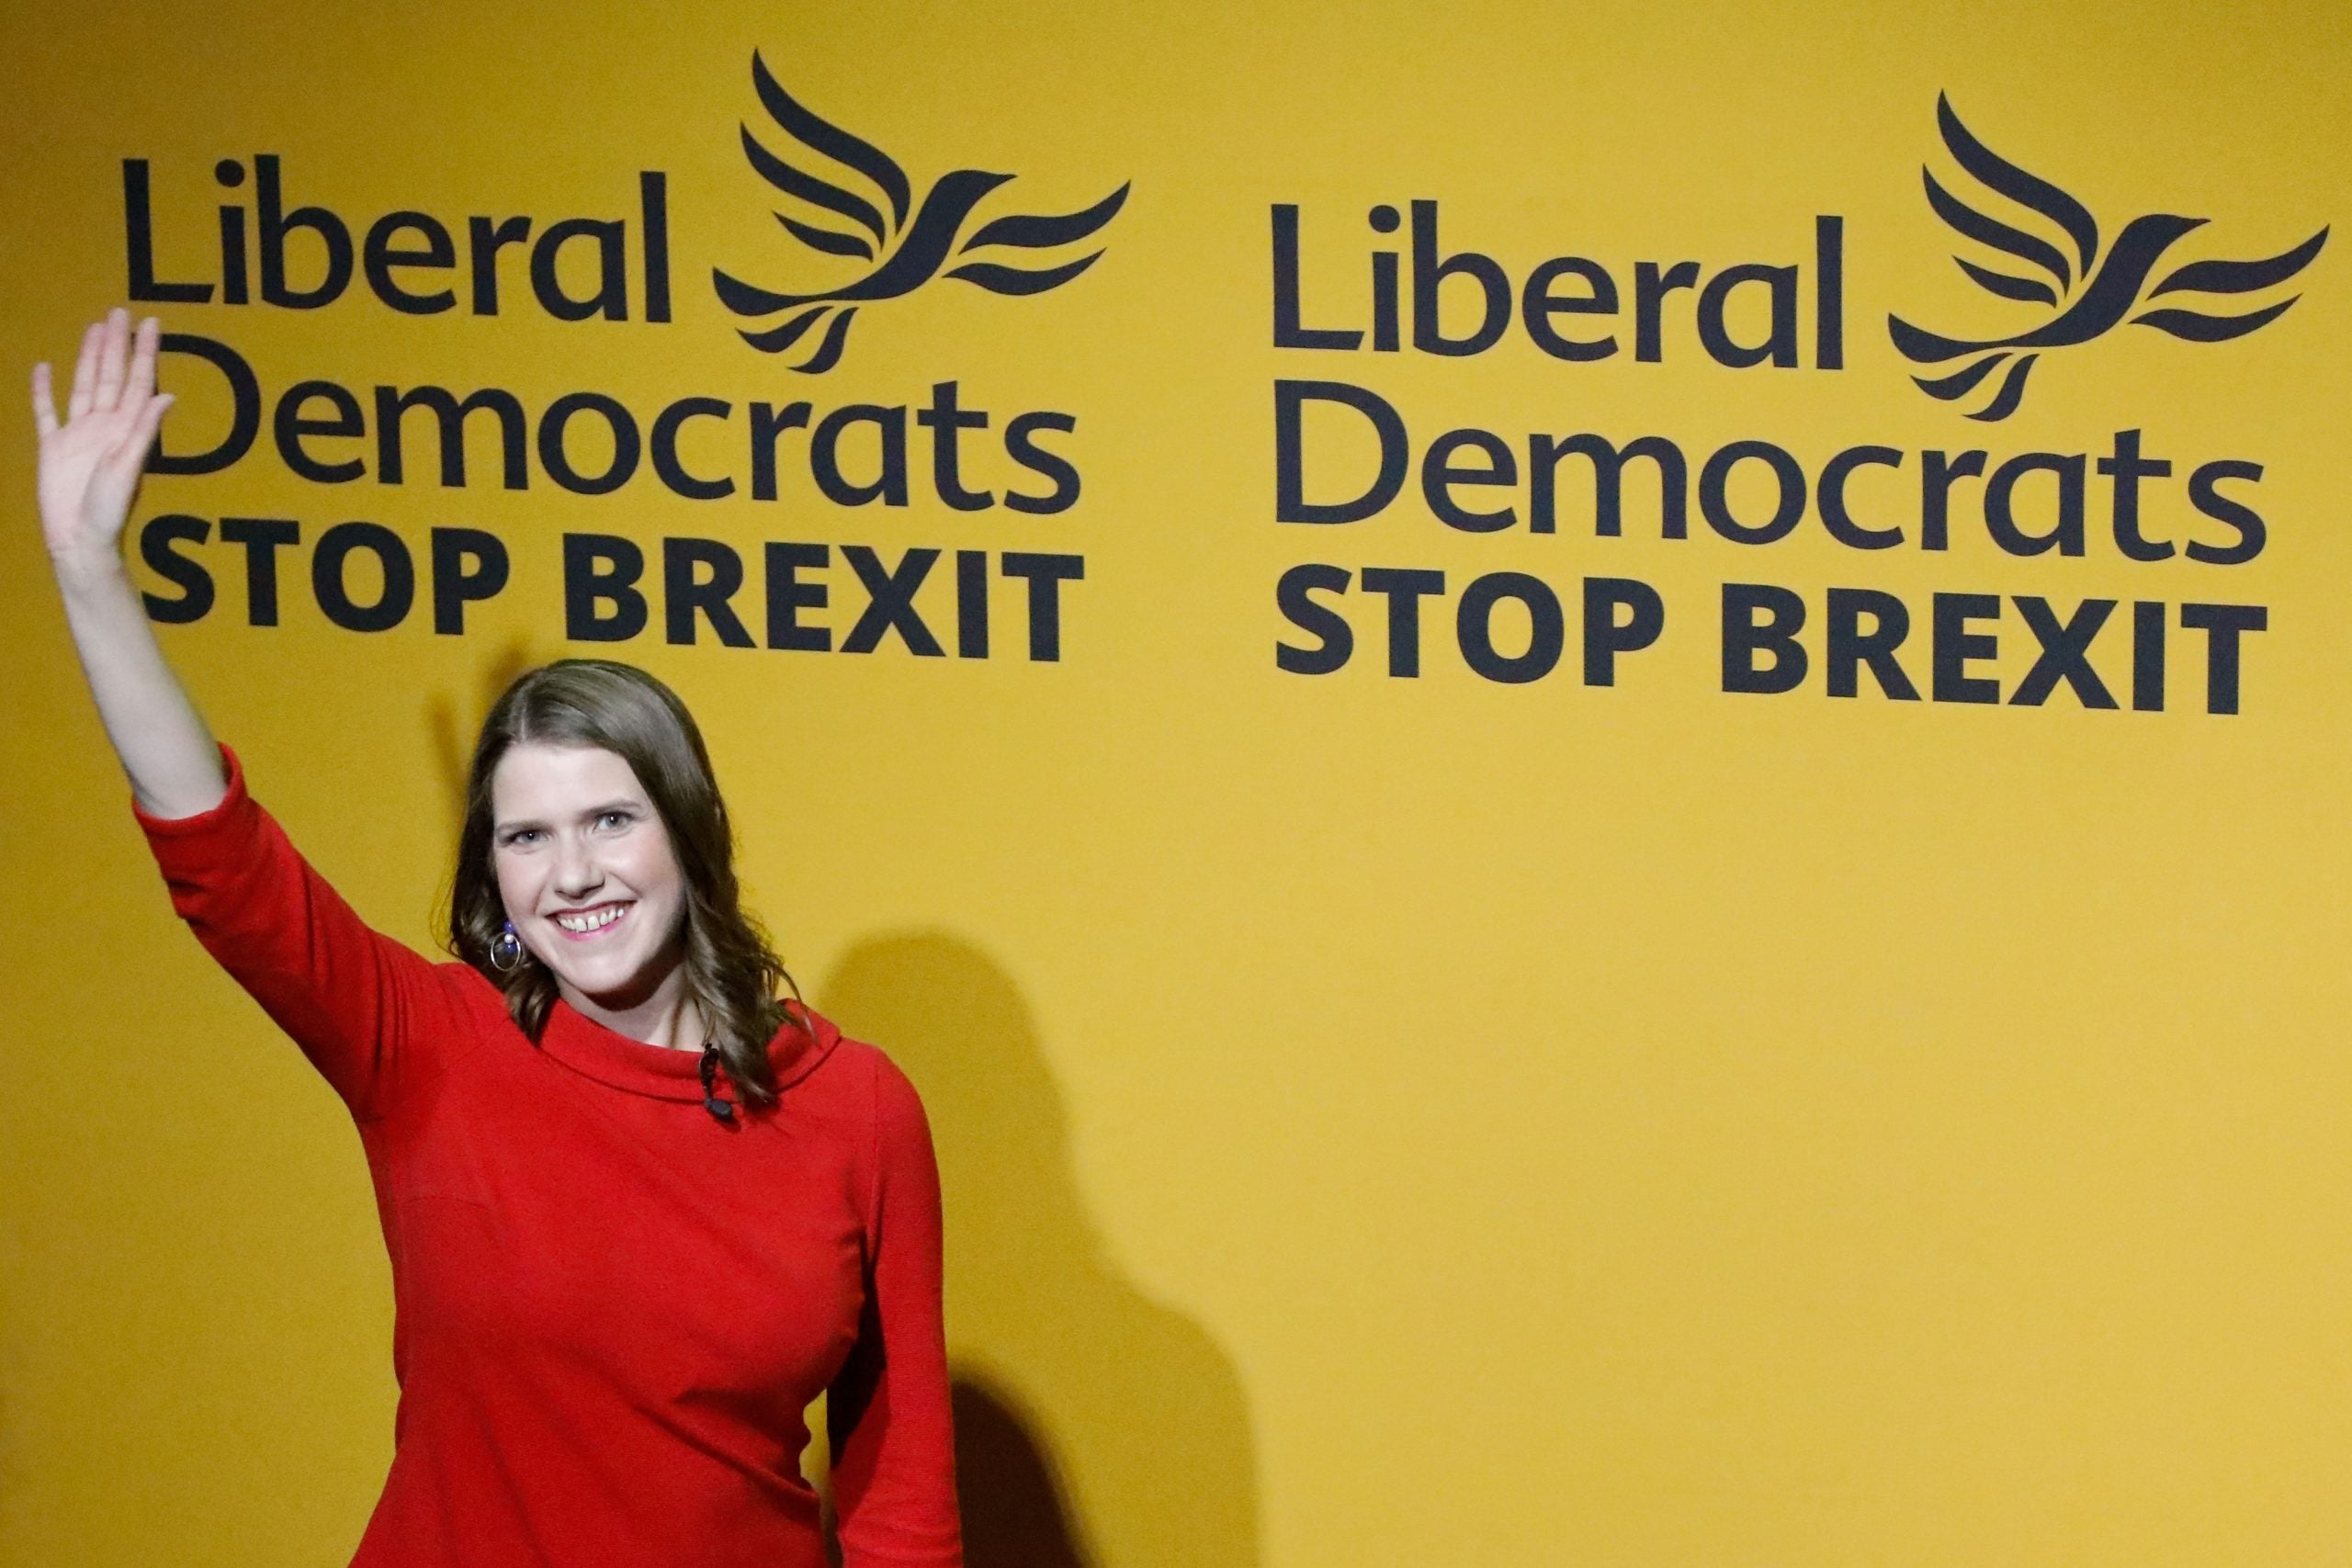 The fate of the Tories now rests with a new leader – Jo Swinson of the Liberal Democrats